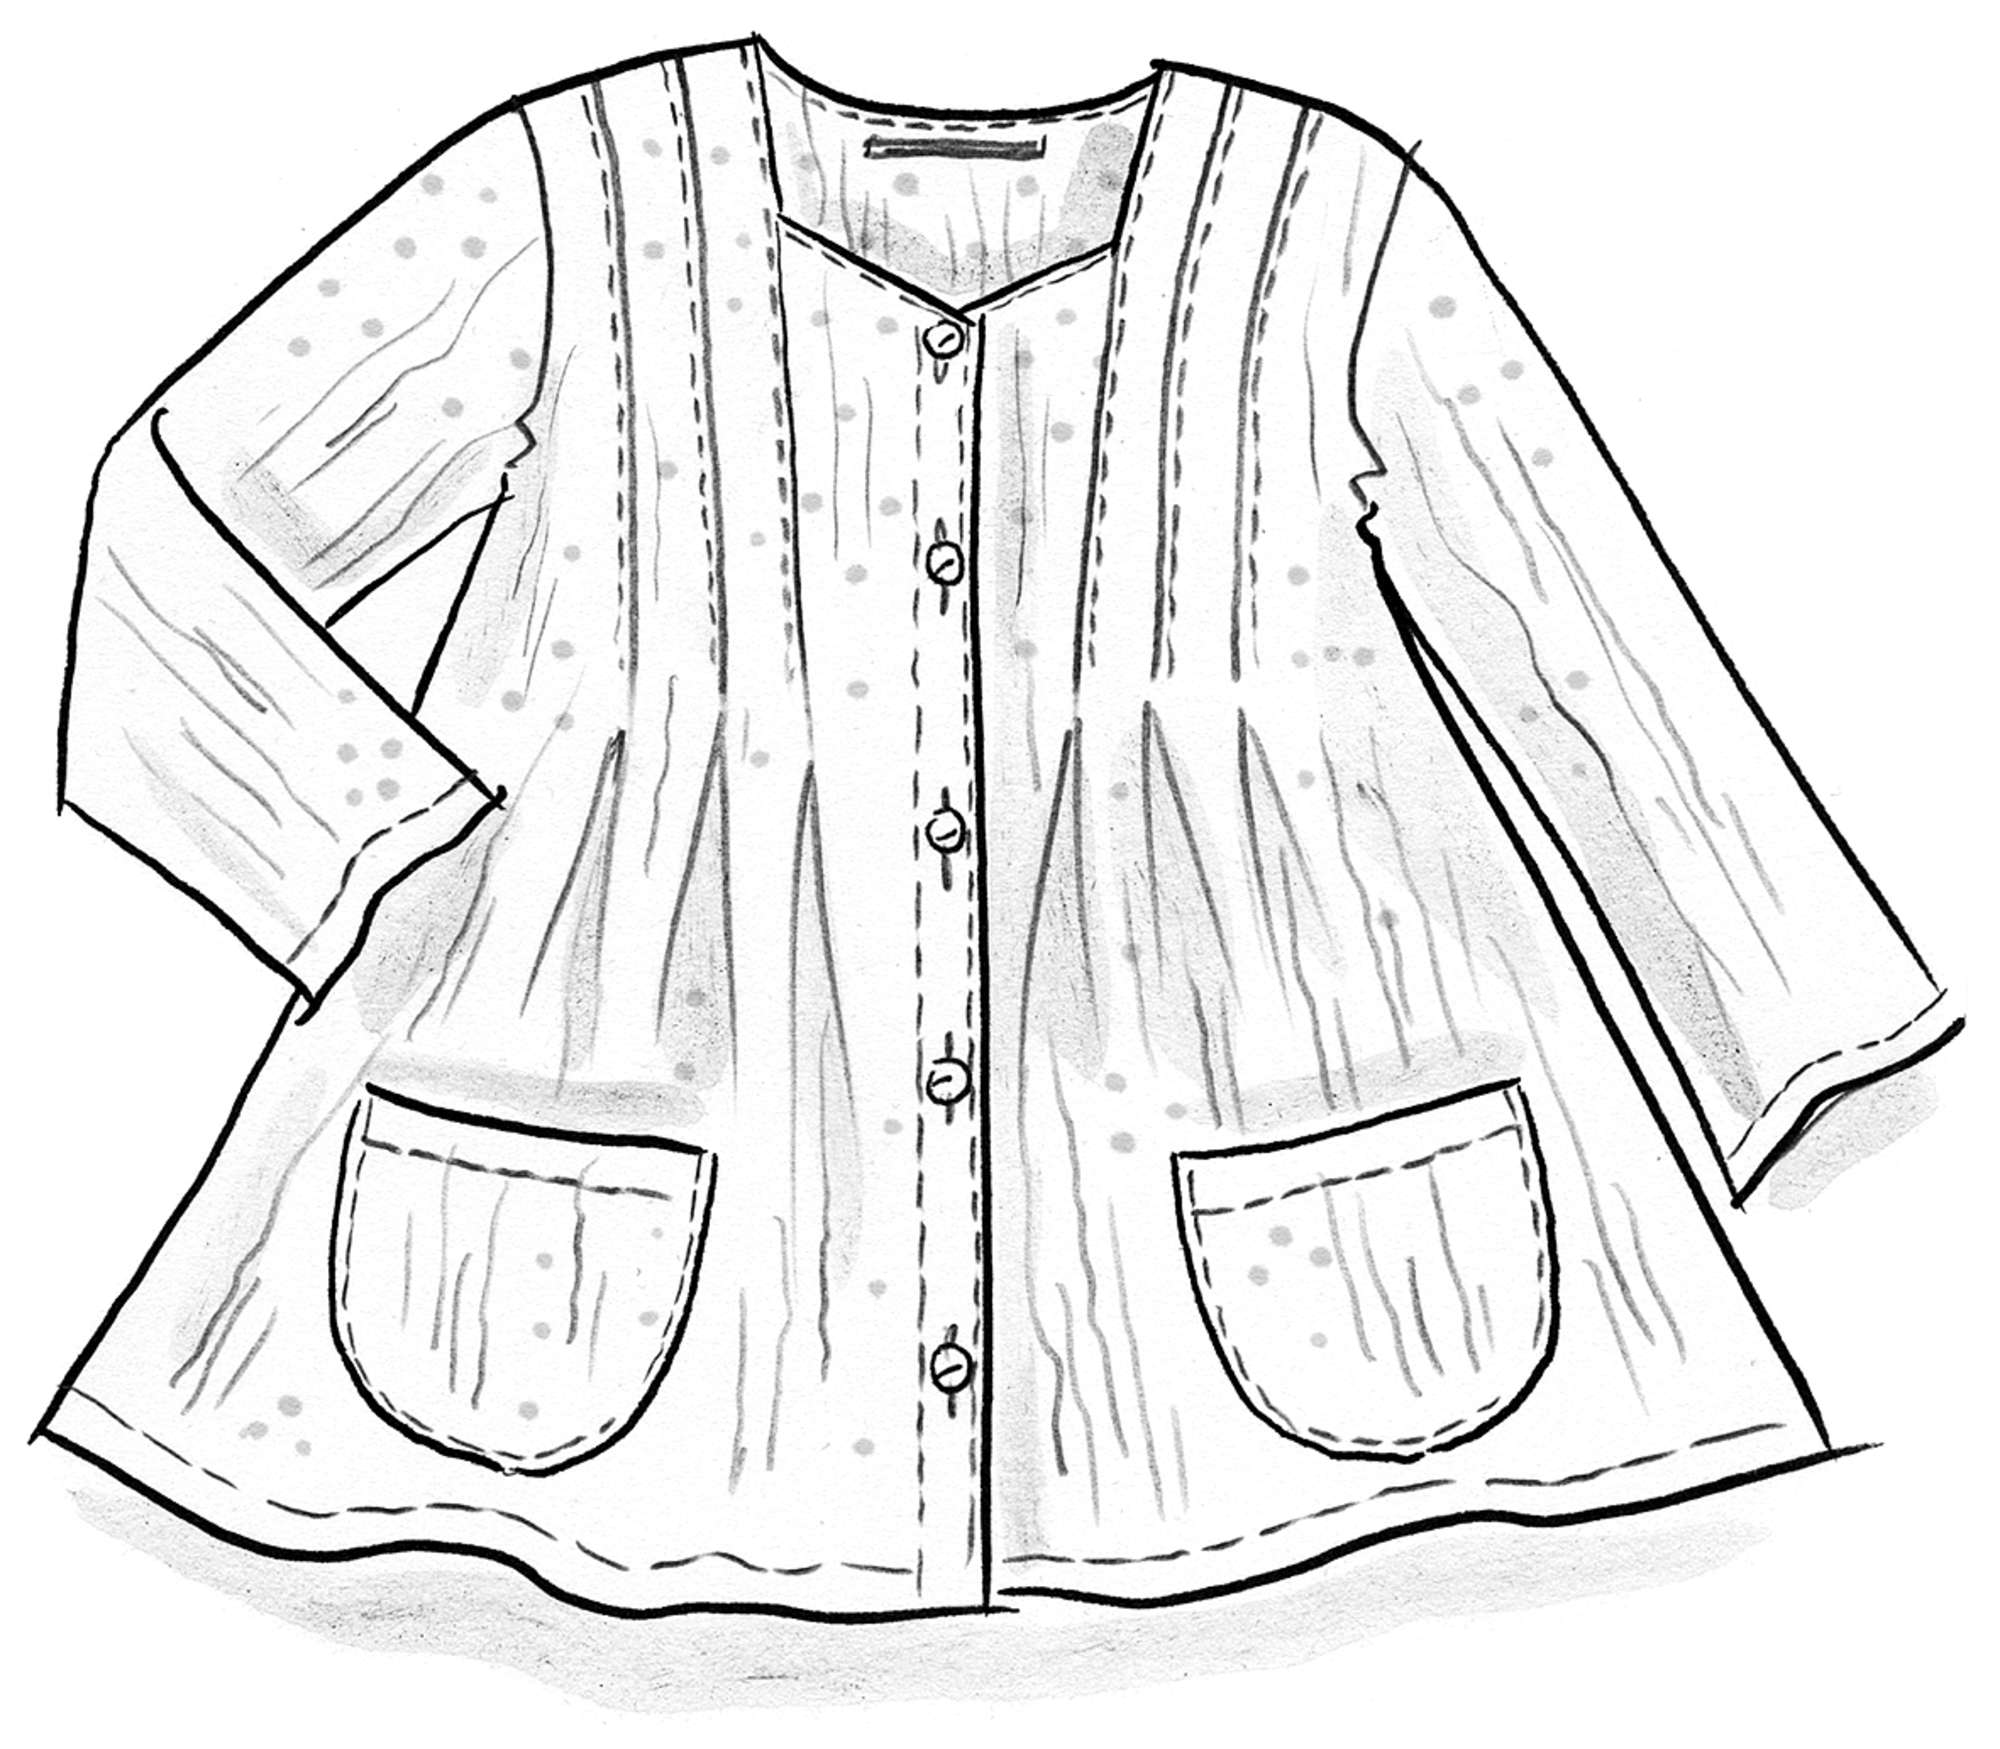 Artist's blouse in cotton crêpe